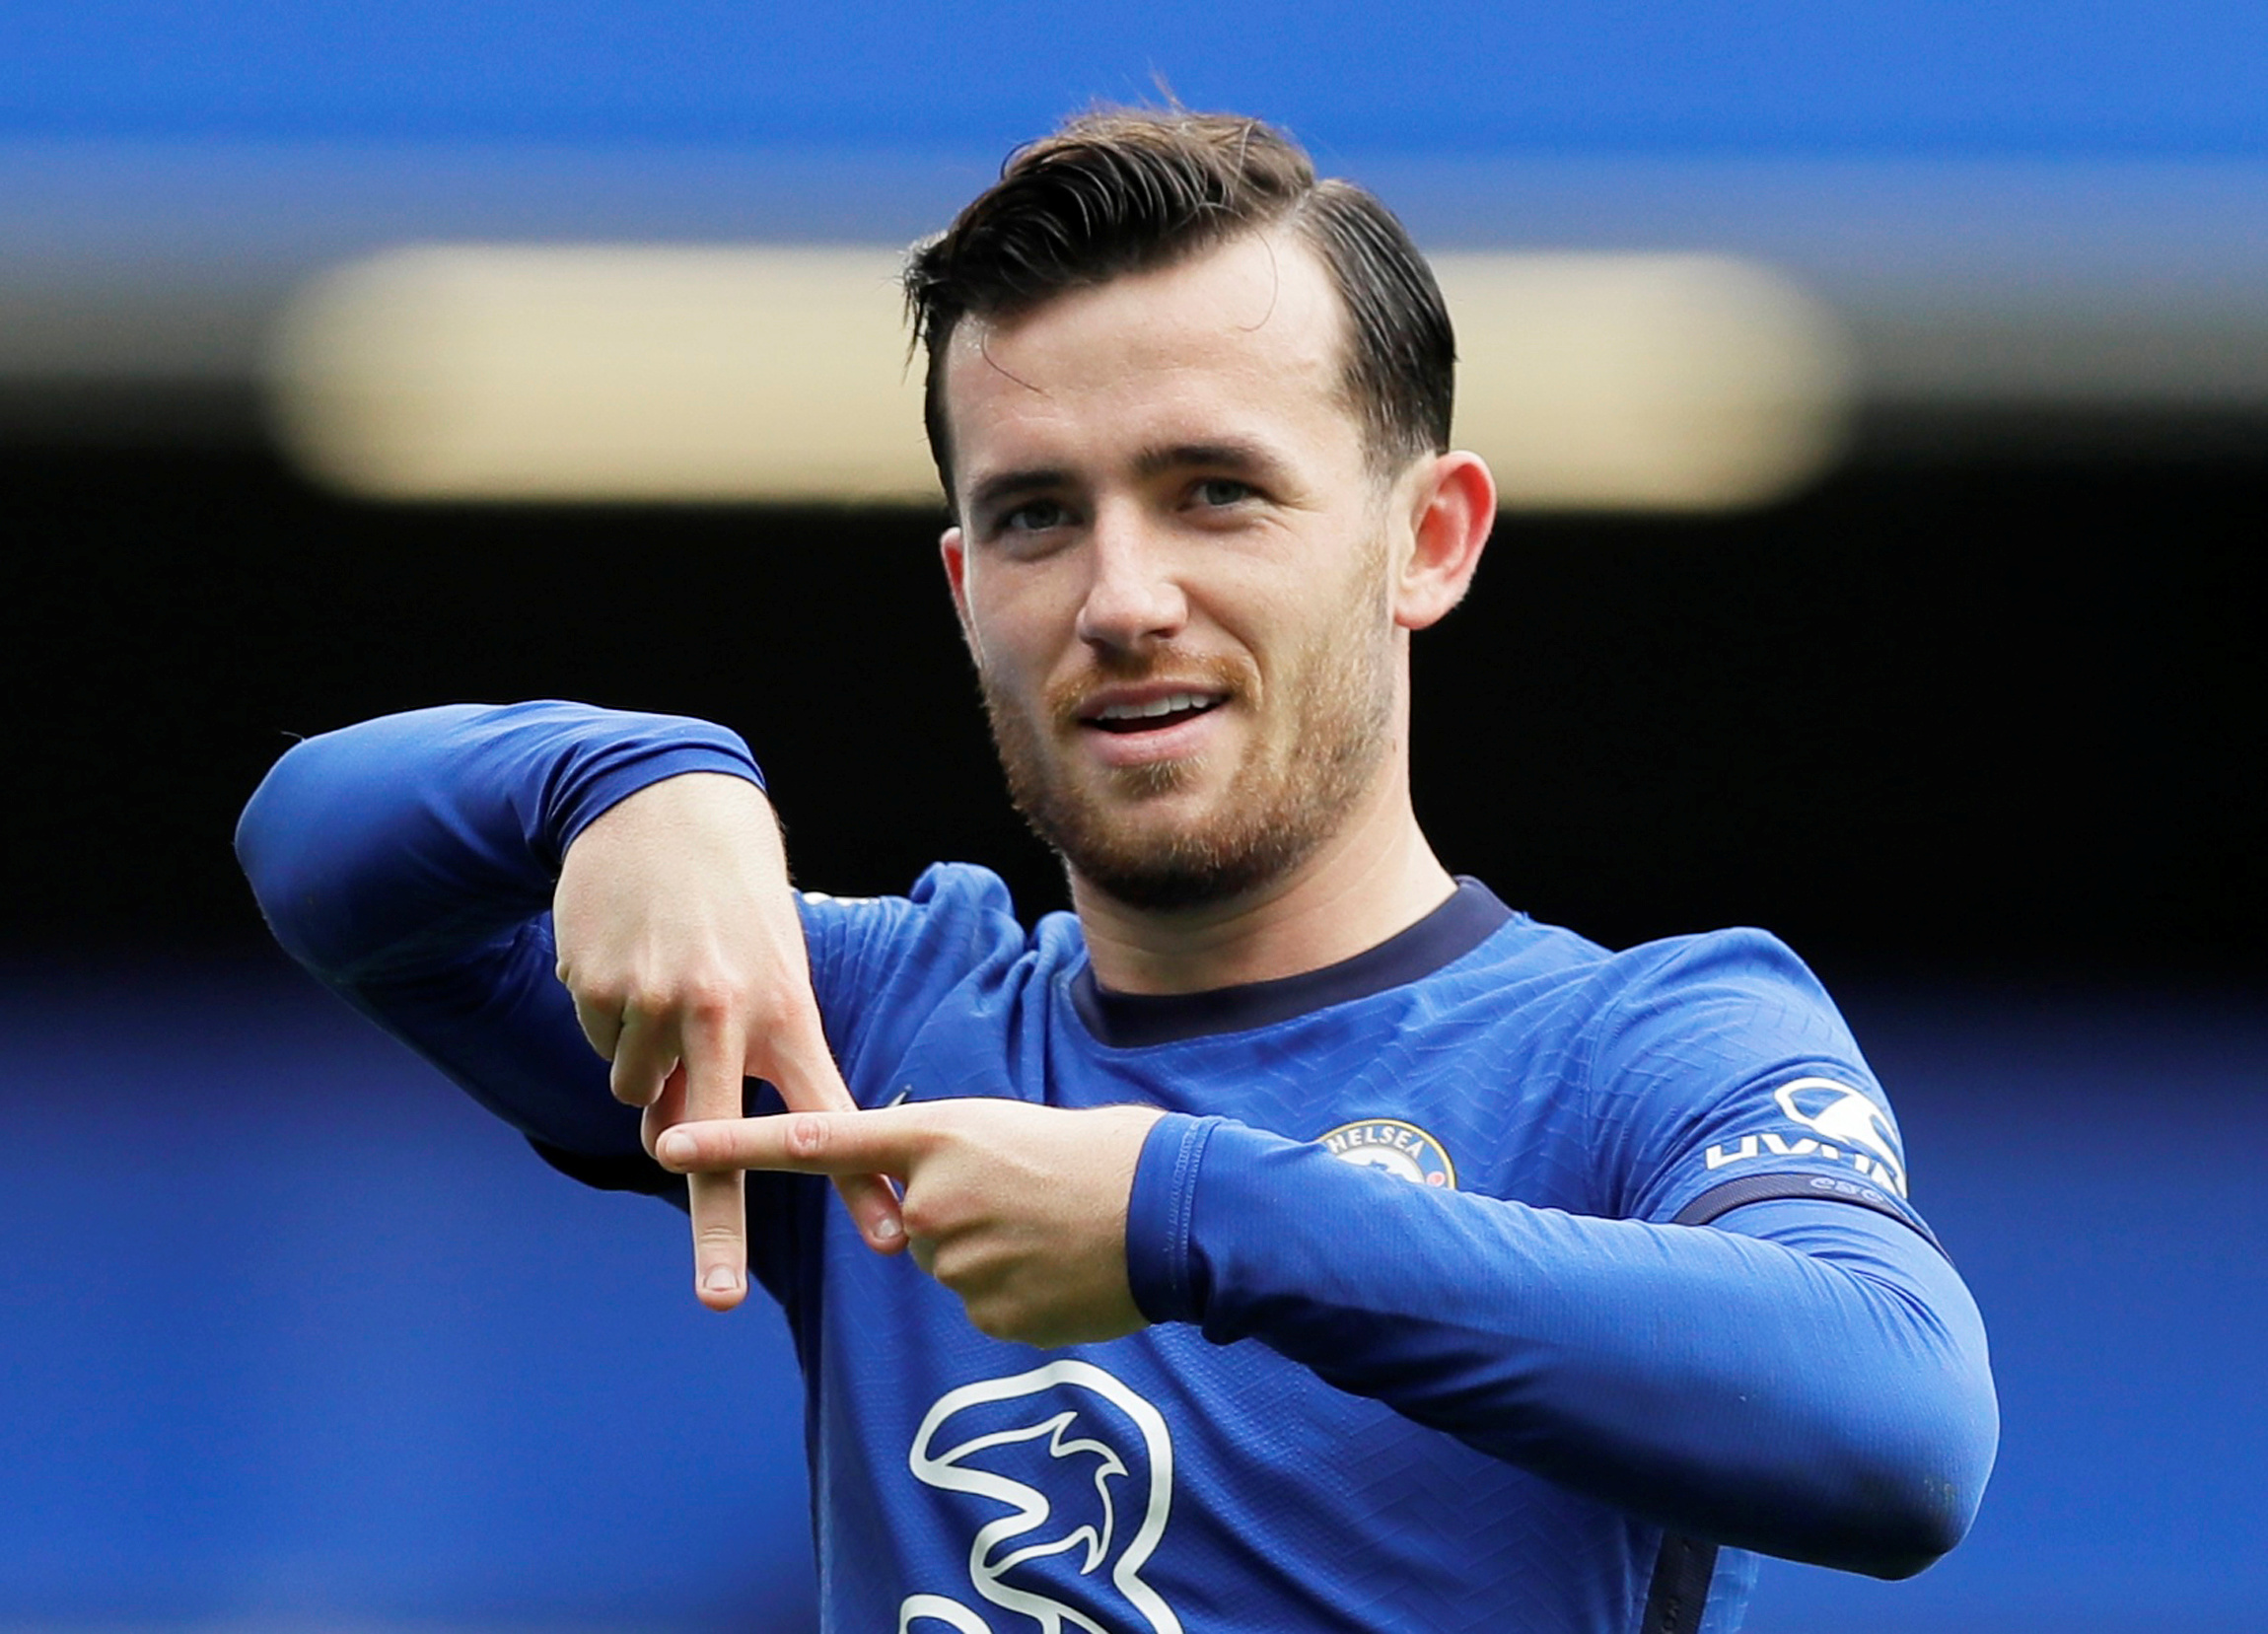 Chelsea's Ben Chilwell celebrates scoring their first goal  during the Premier League match between Chelsea  and Crystal Palace, at  Stamford Bridge, in  London, Britain, on  October 3, 2020. Photo: Pool via Reuters